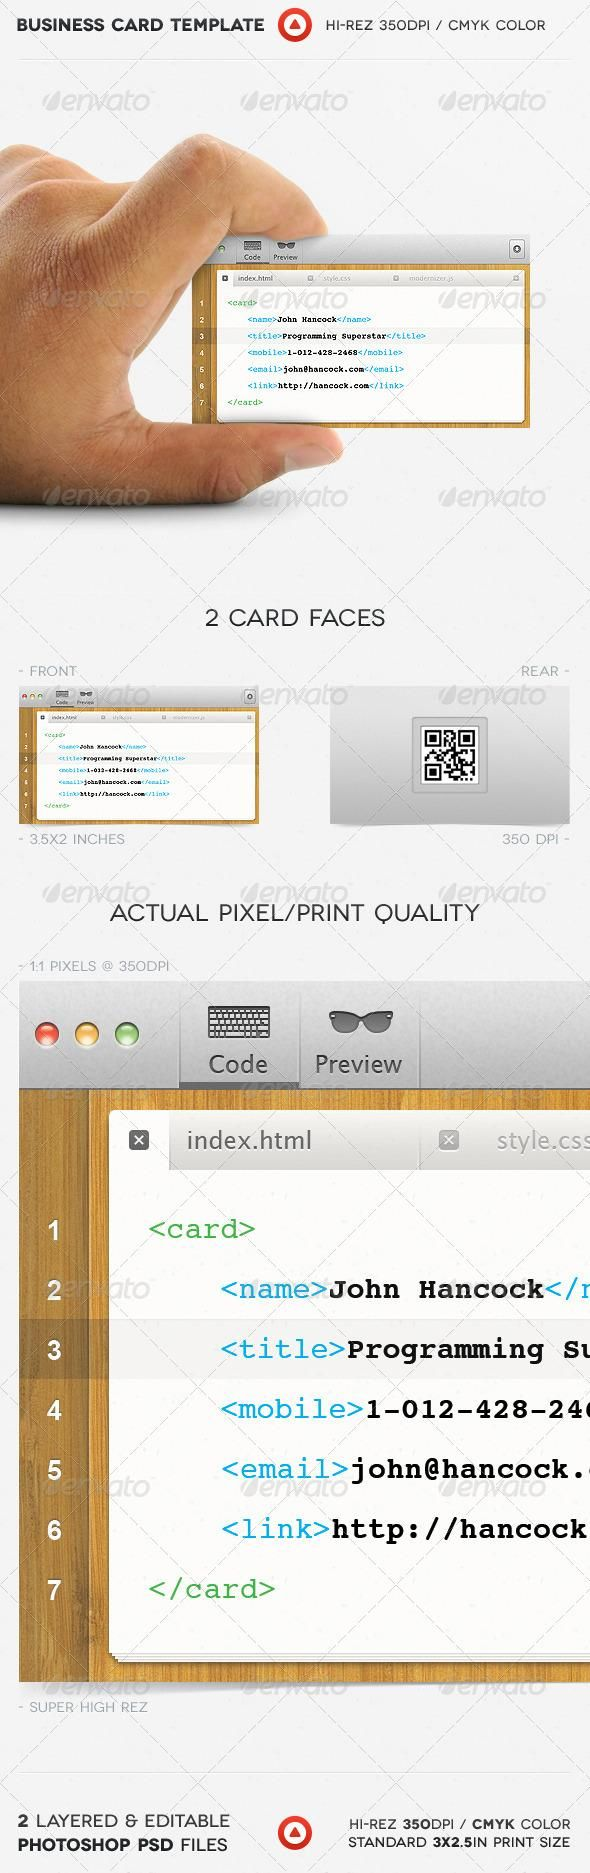 Best Business Card Design Images On Pinterest Business Card - 35 x2 business card template